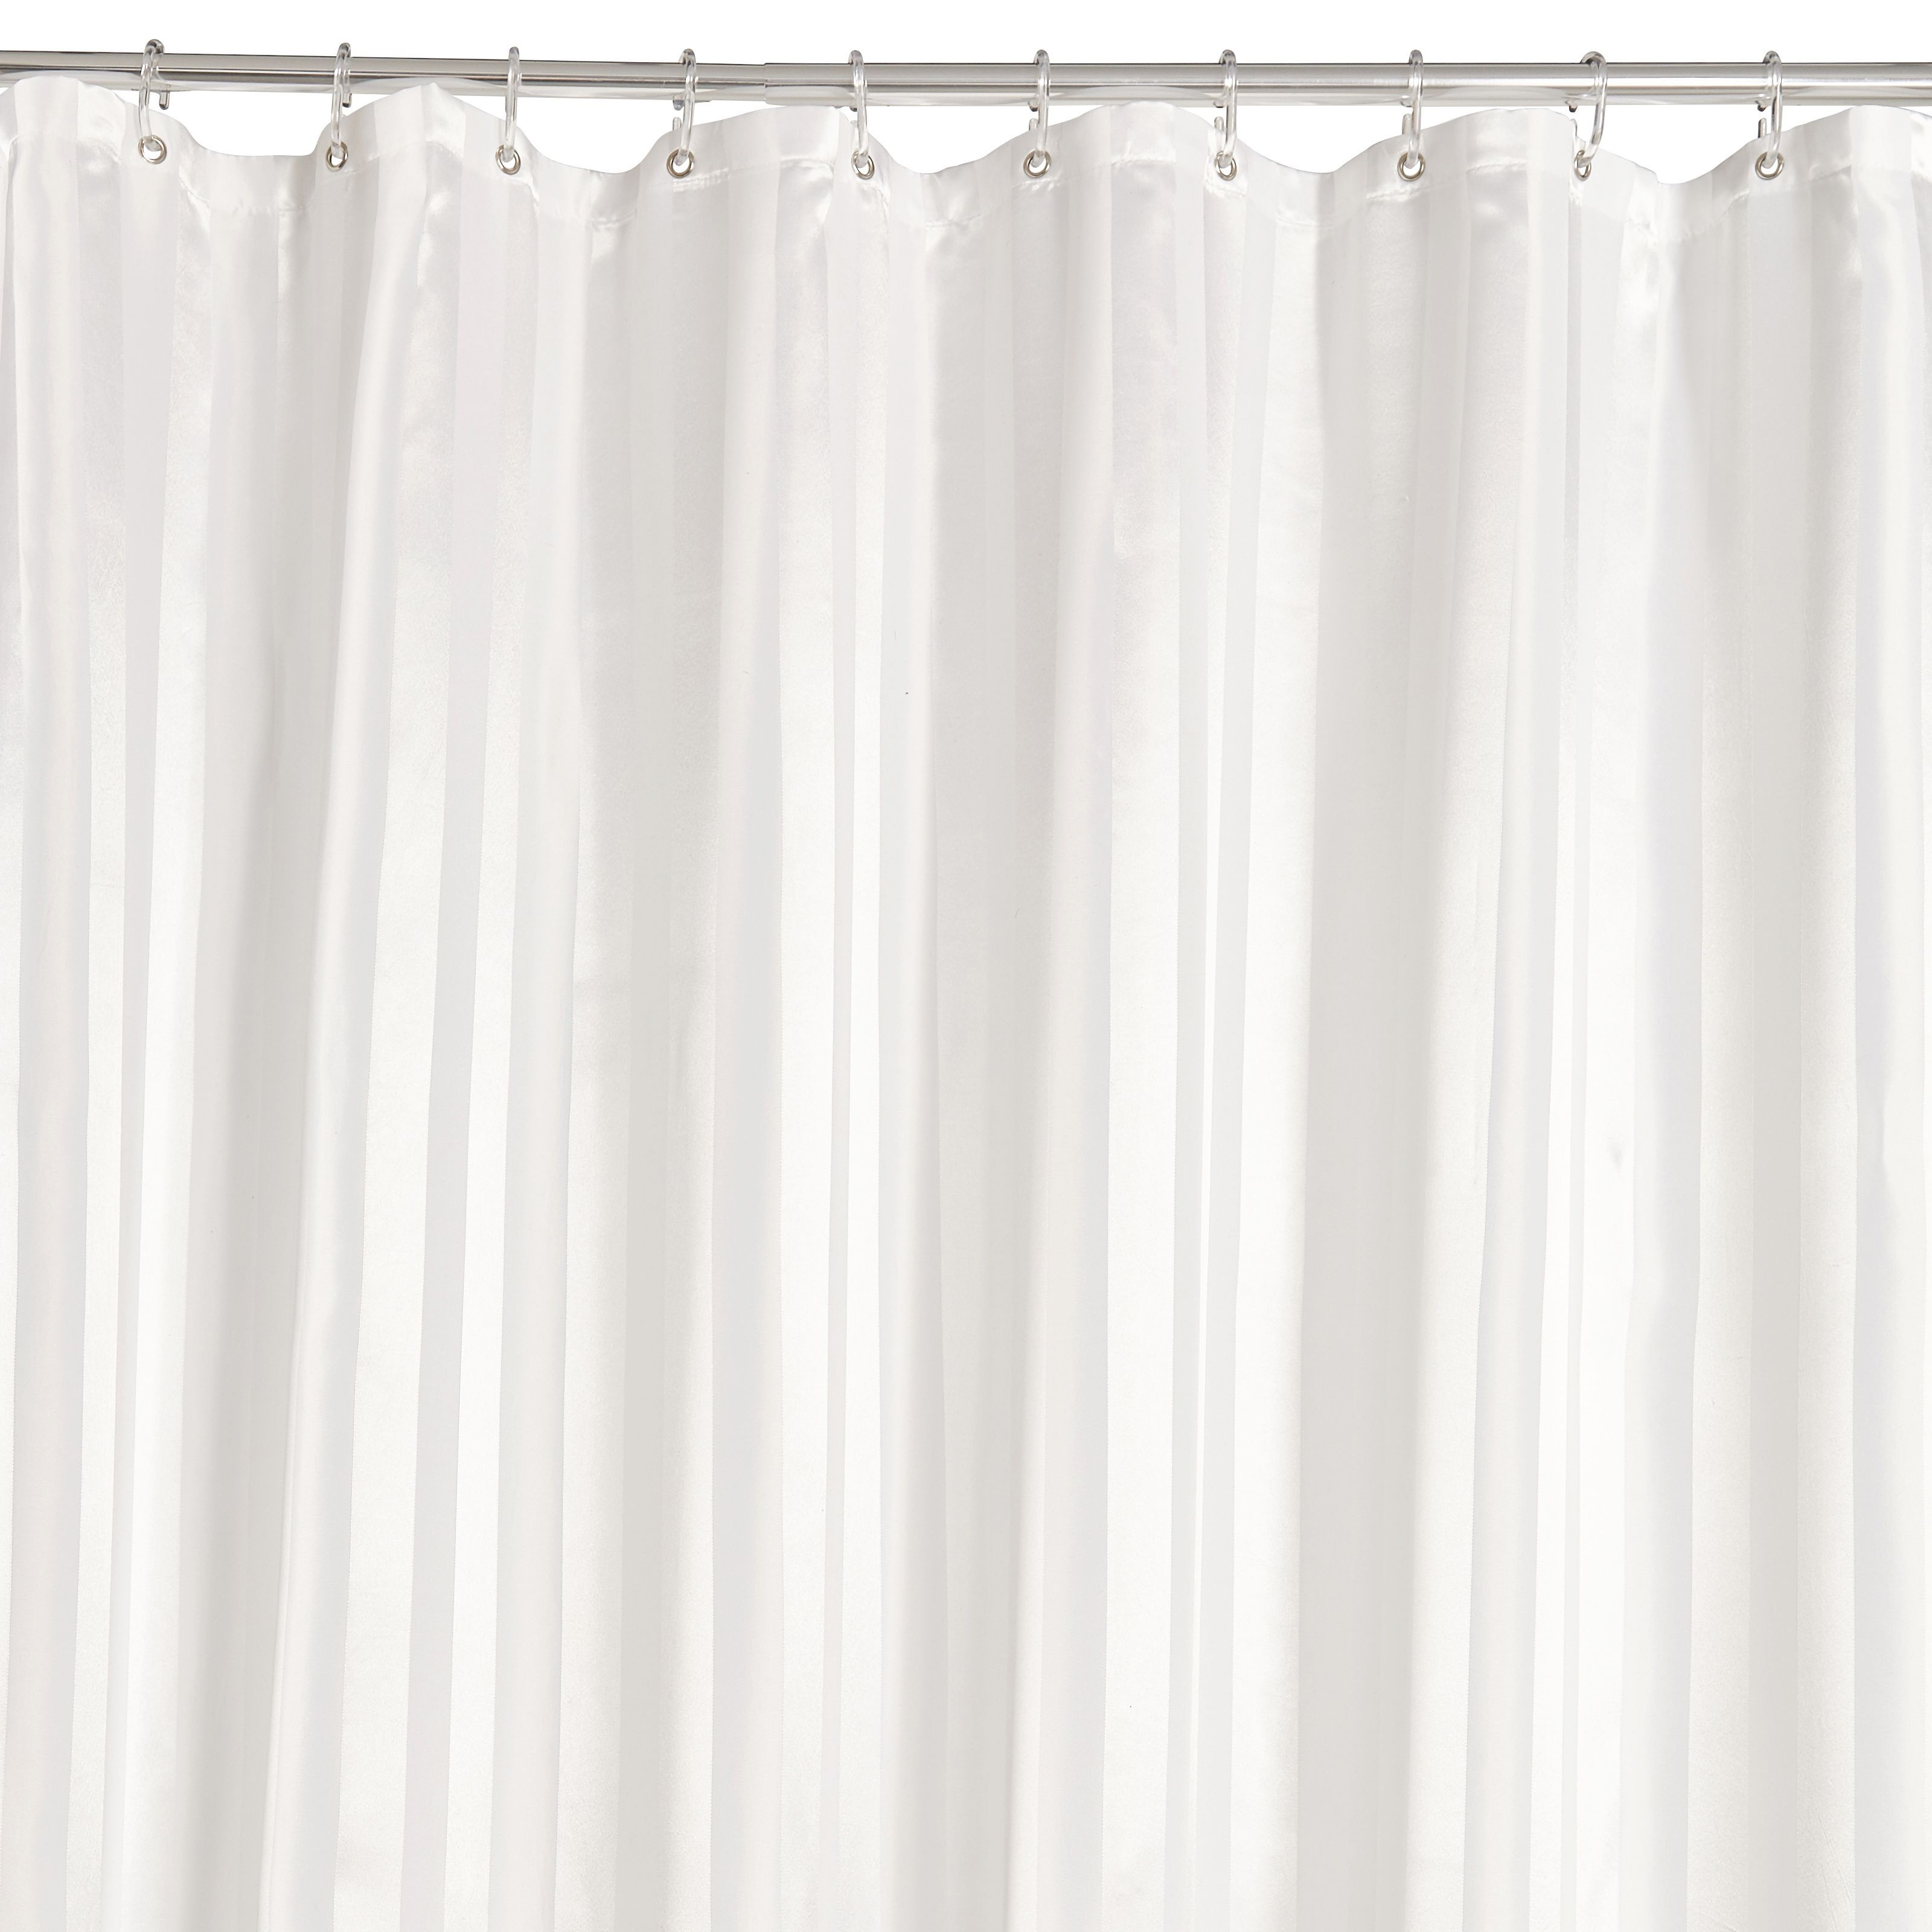 White Striped Shower Curtain L 2000 Mm Departments Diy At B Q